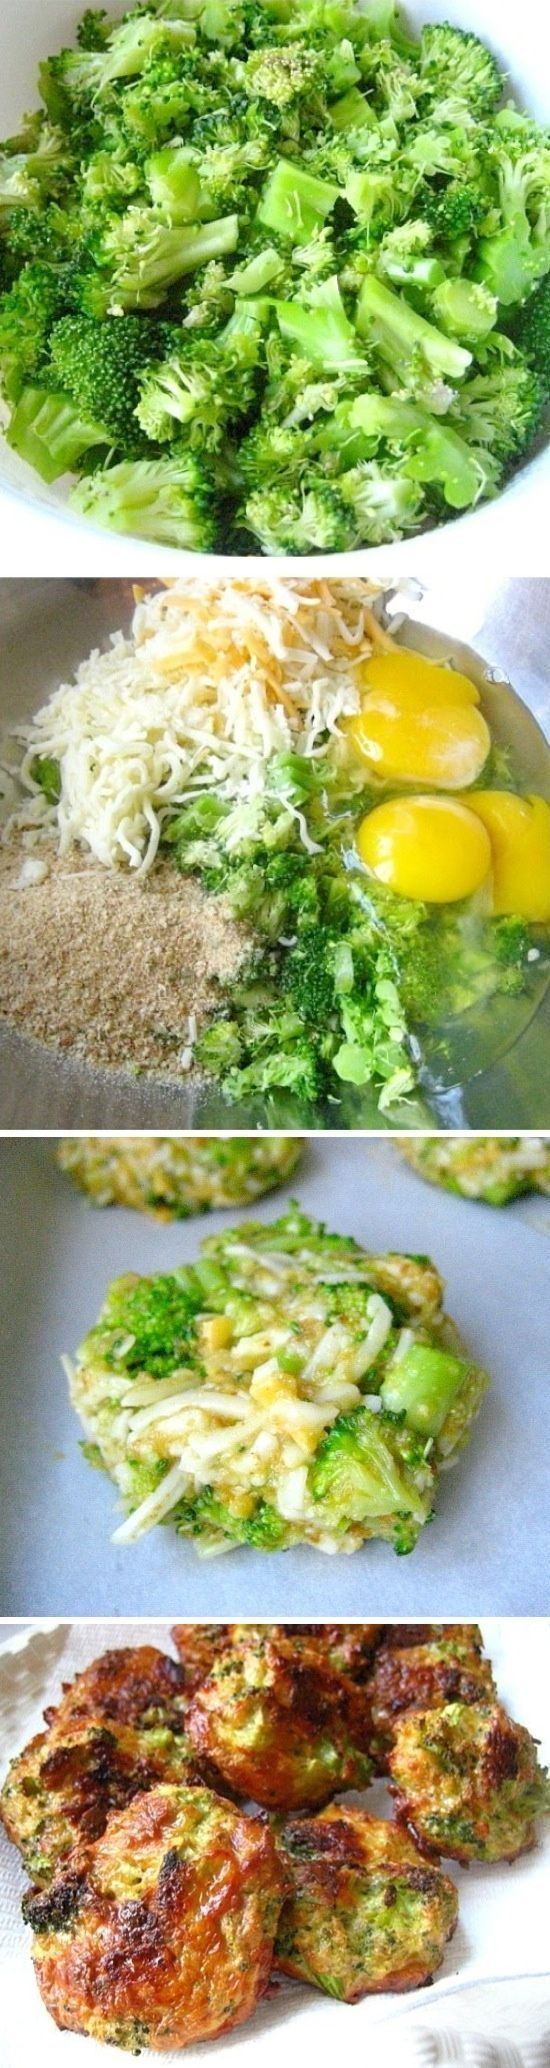 Broccoli Cheese Bites for a low-carb healthy diet Source: http://www.superhealthykids.com